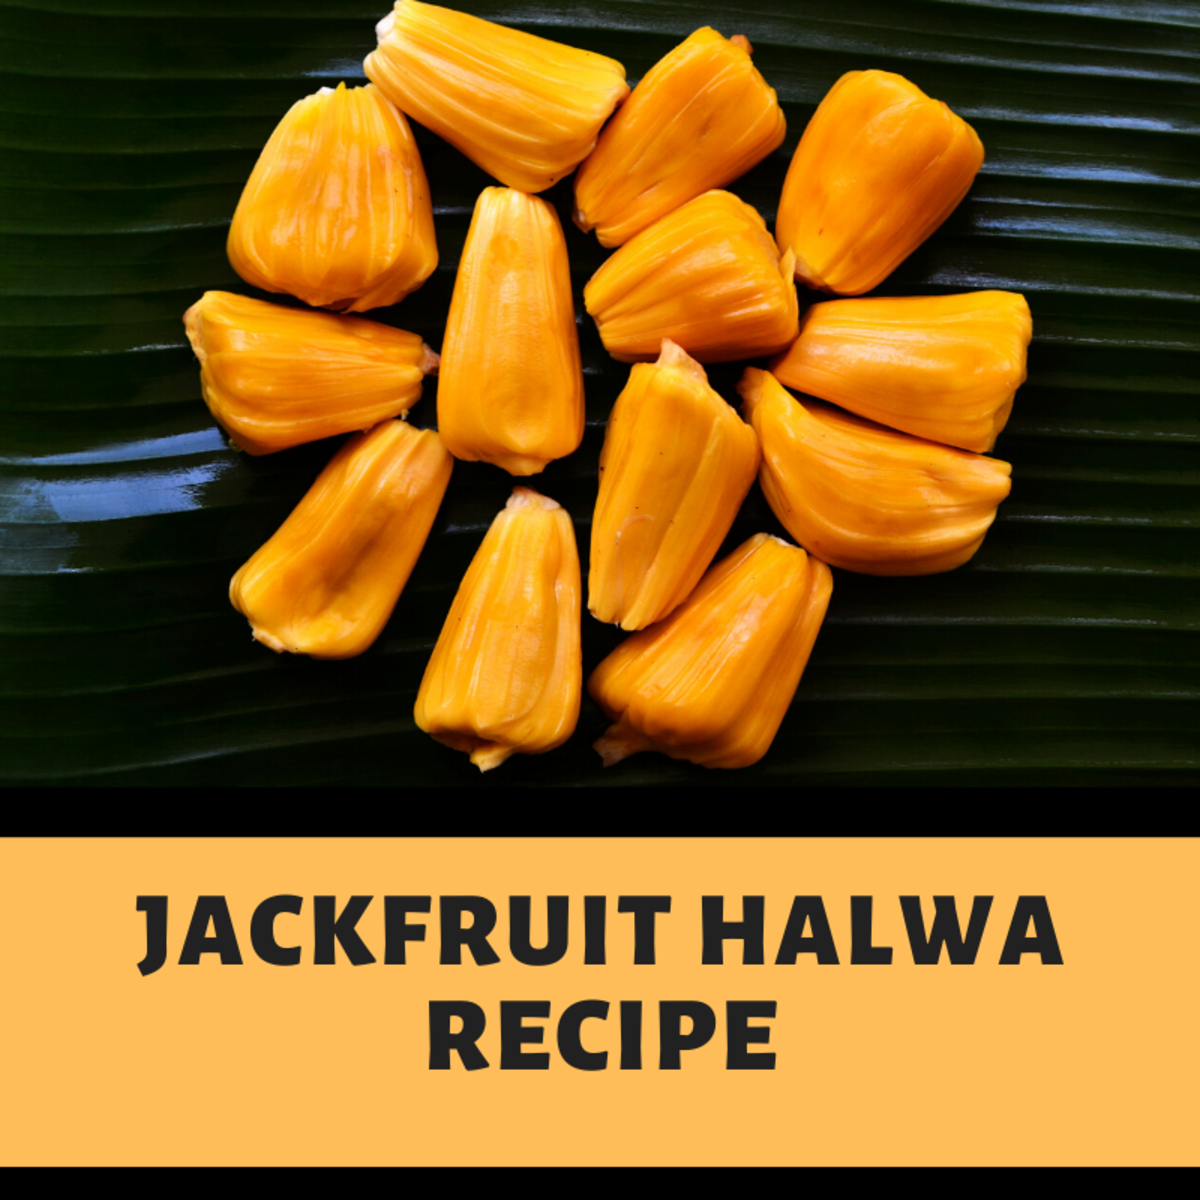 Making Desserts: Jackfruit Halwa Recipe